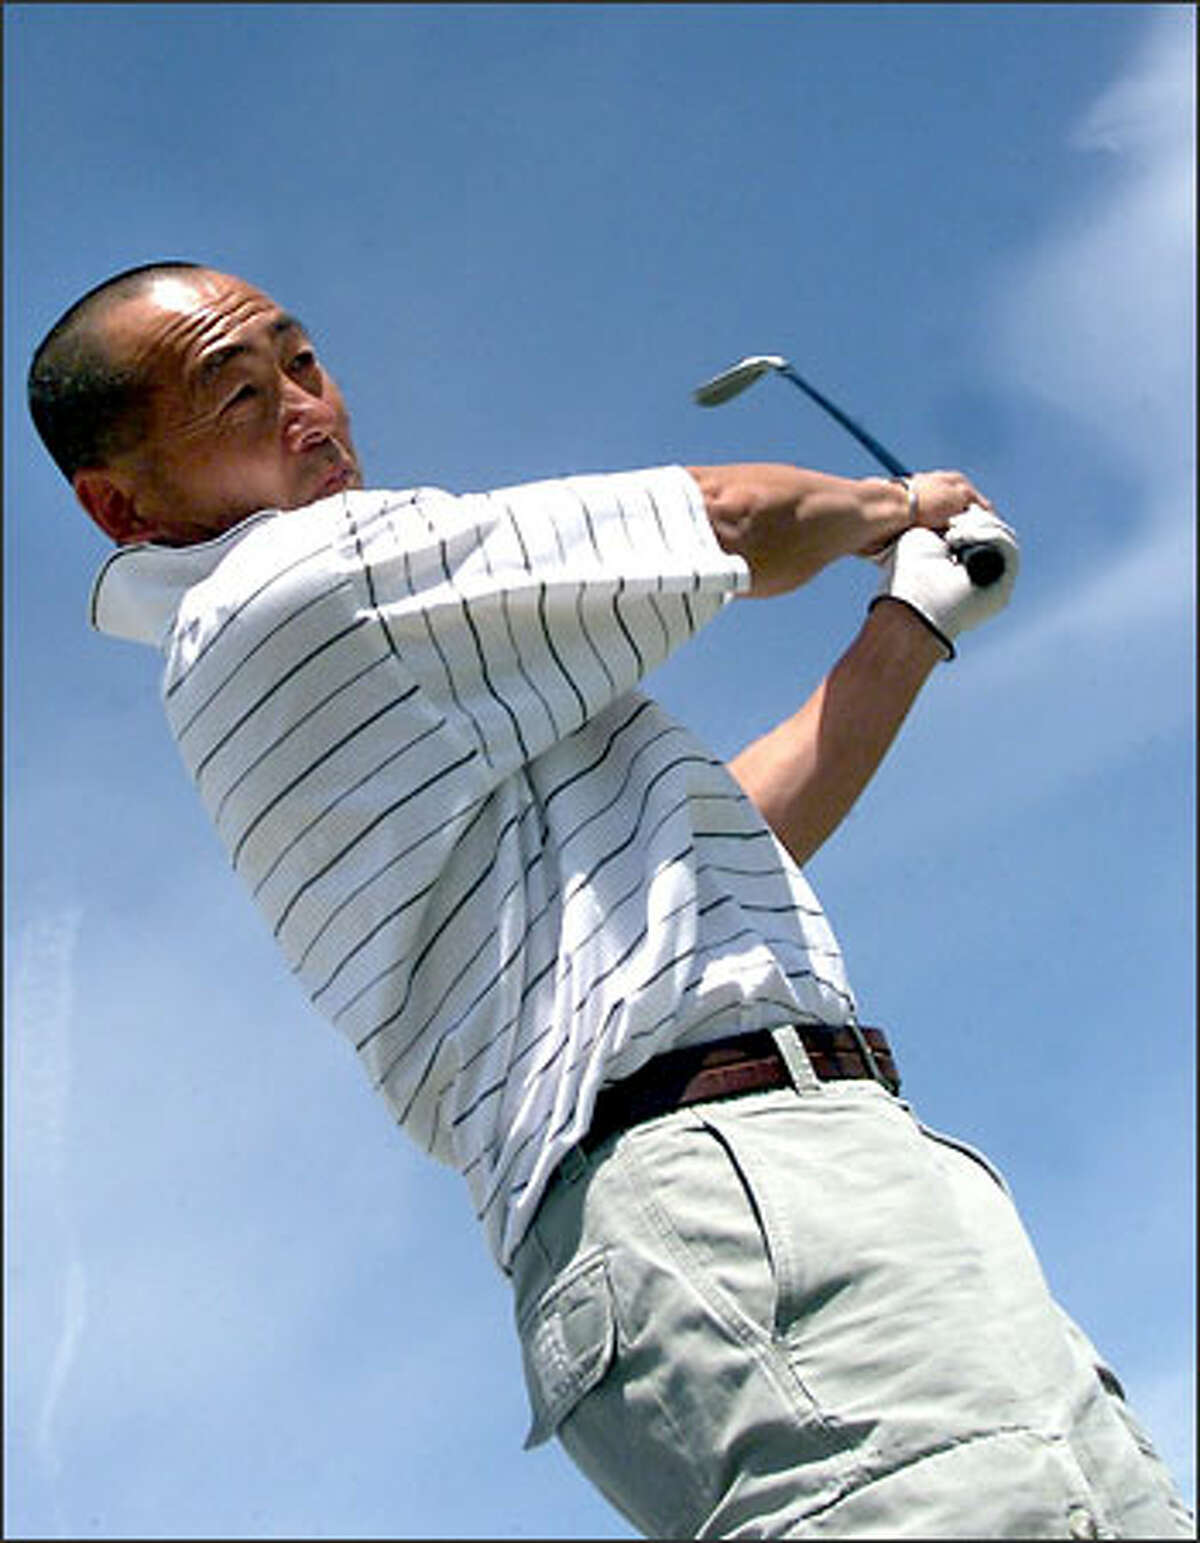 Scott Oki follows through on a golf shot.